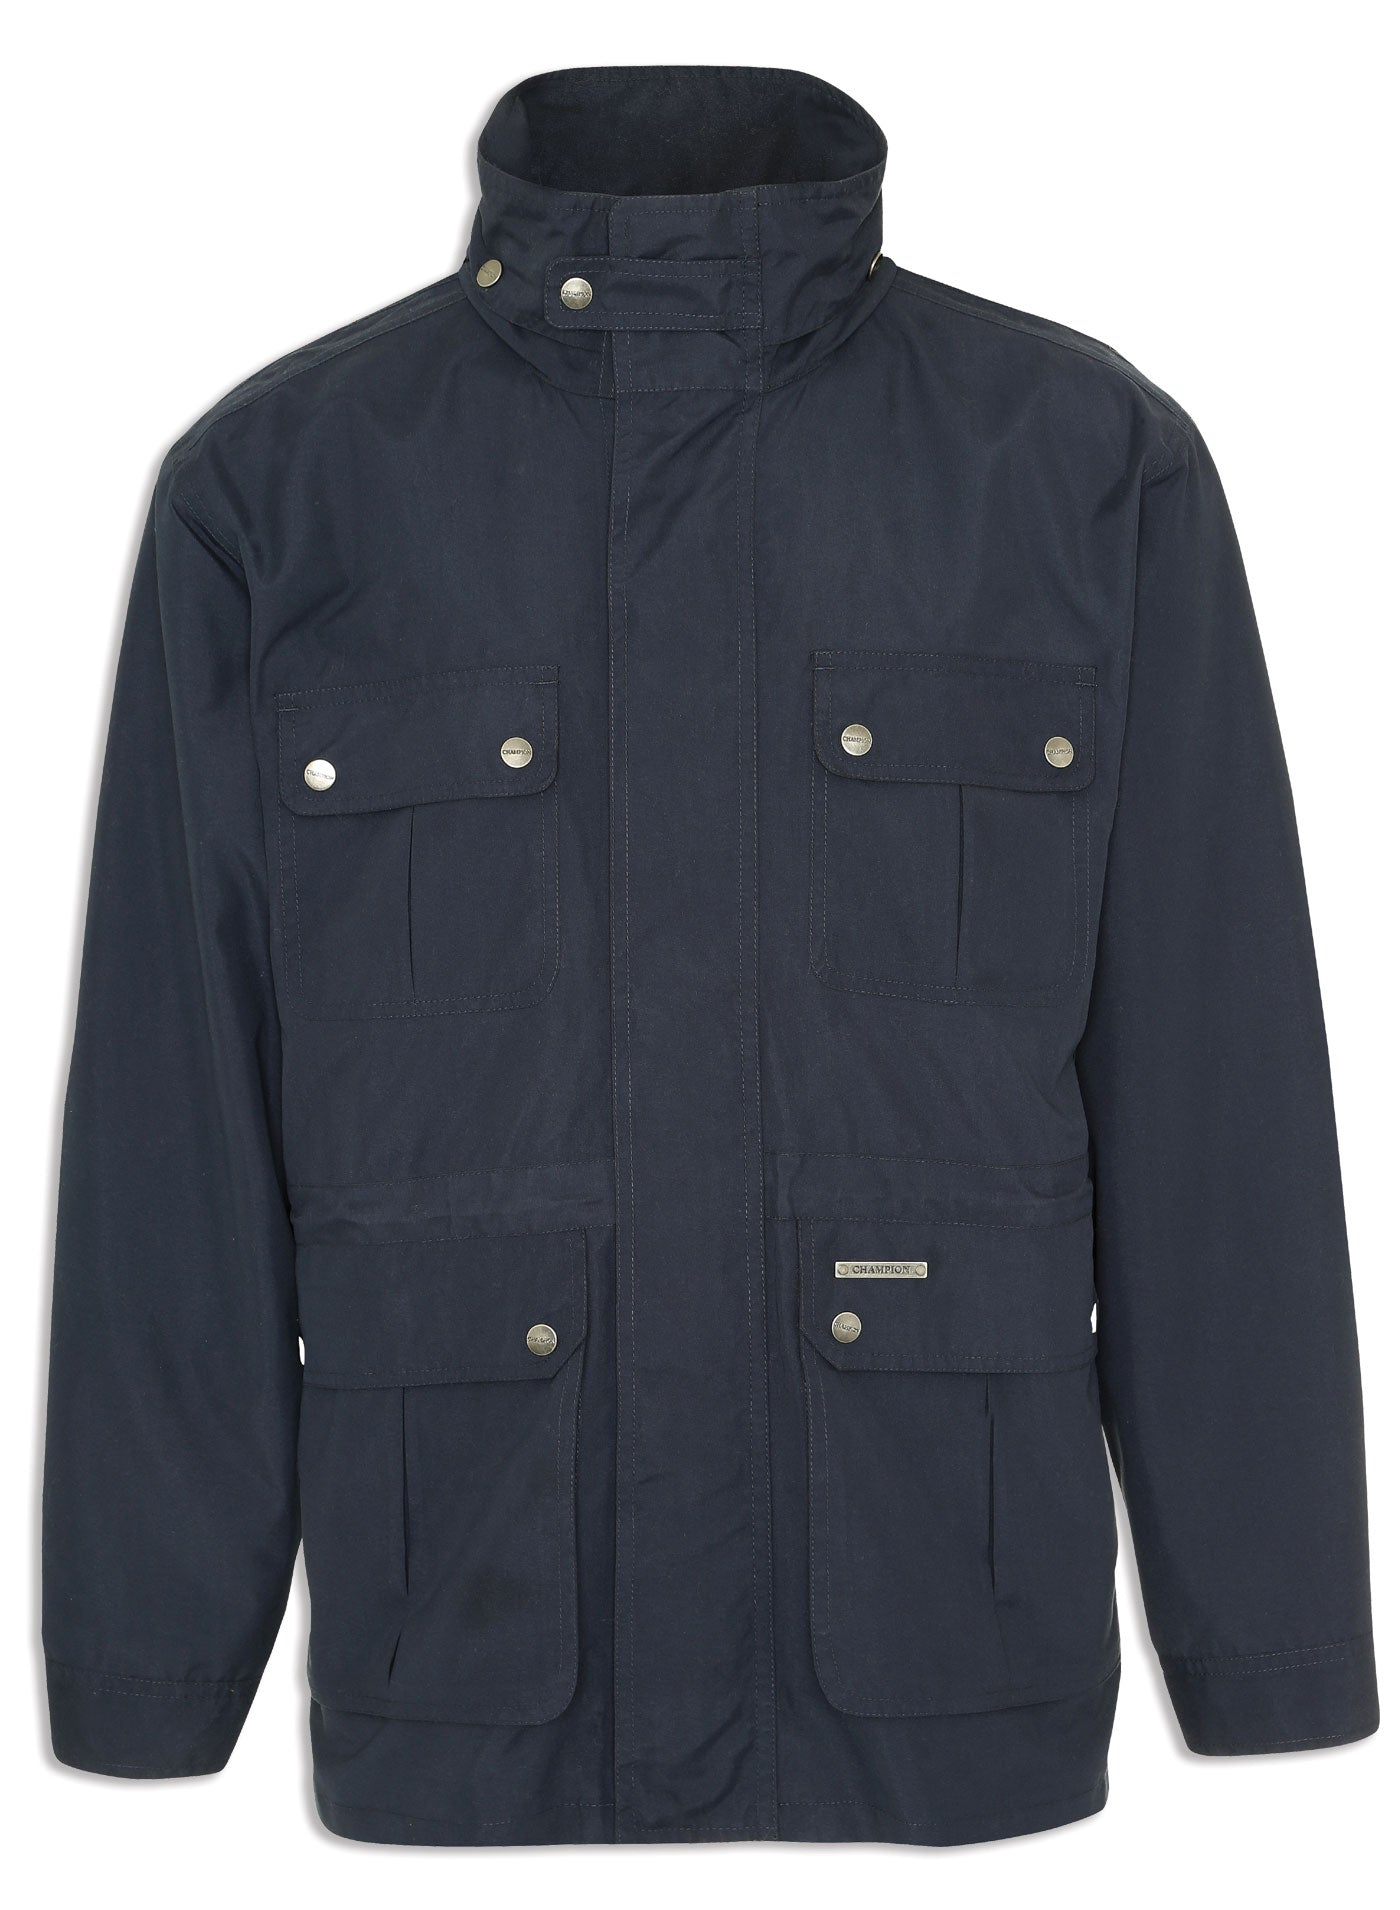 Champion pevensey multi-pocket jacket in navy